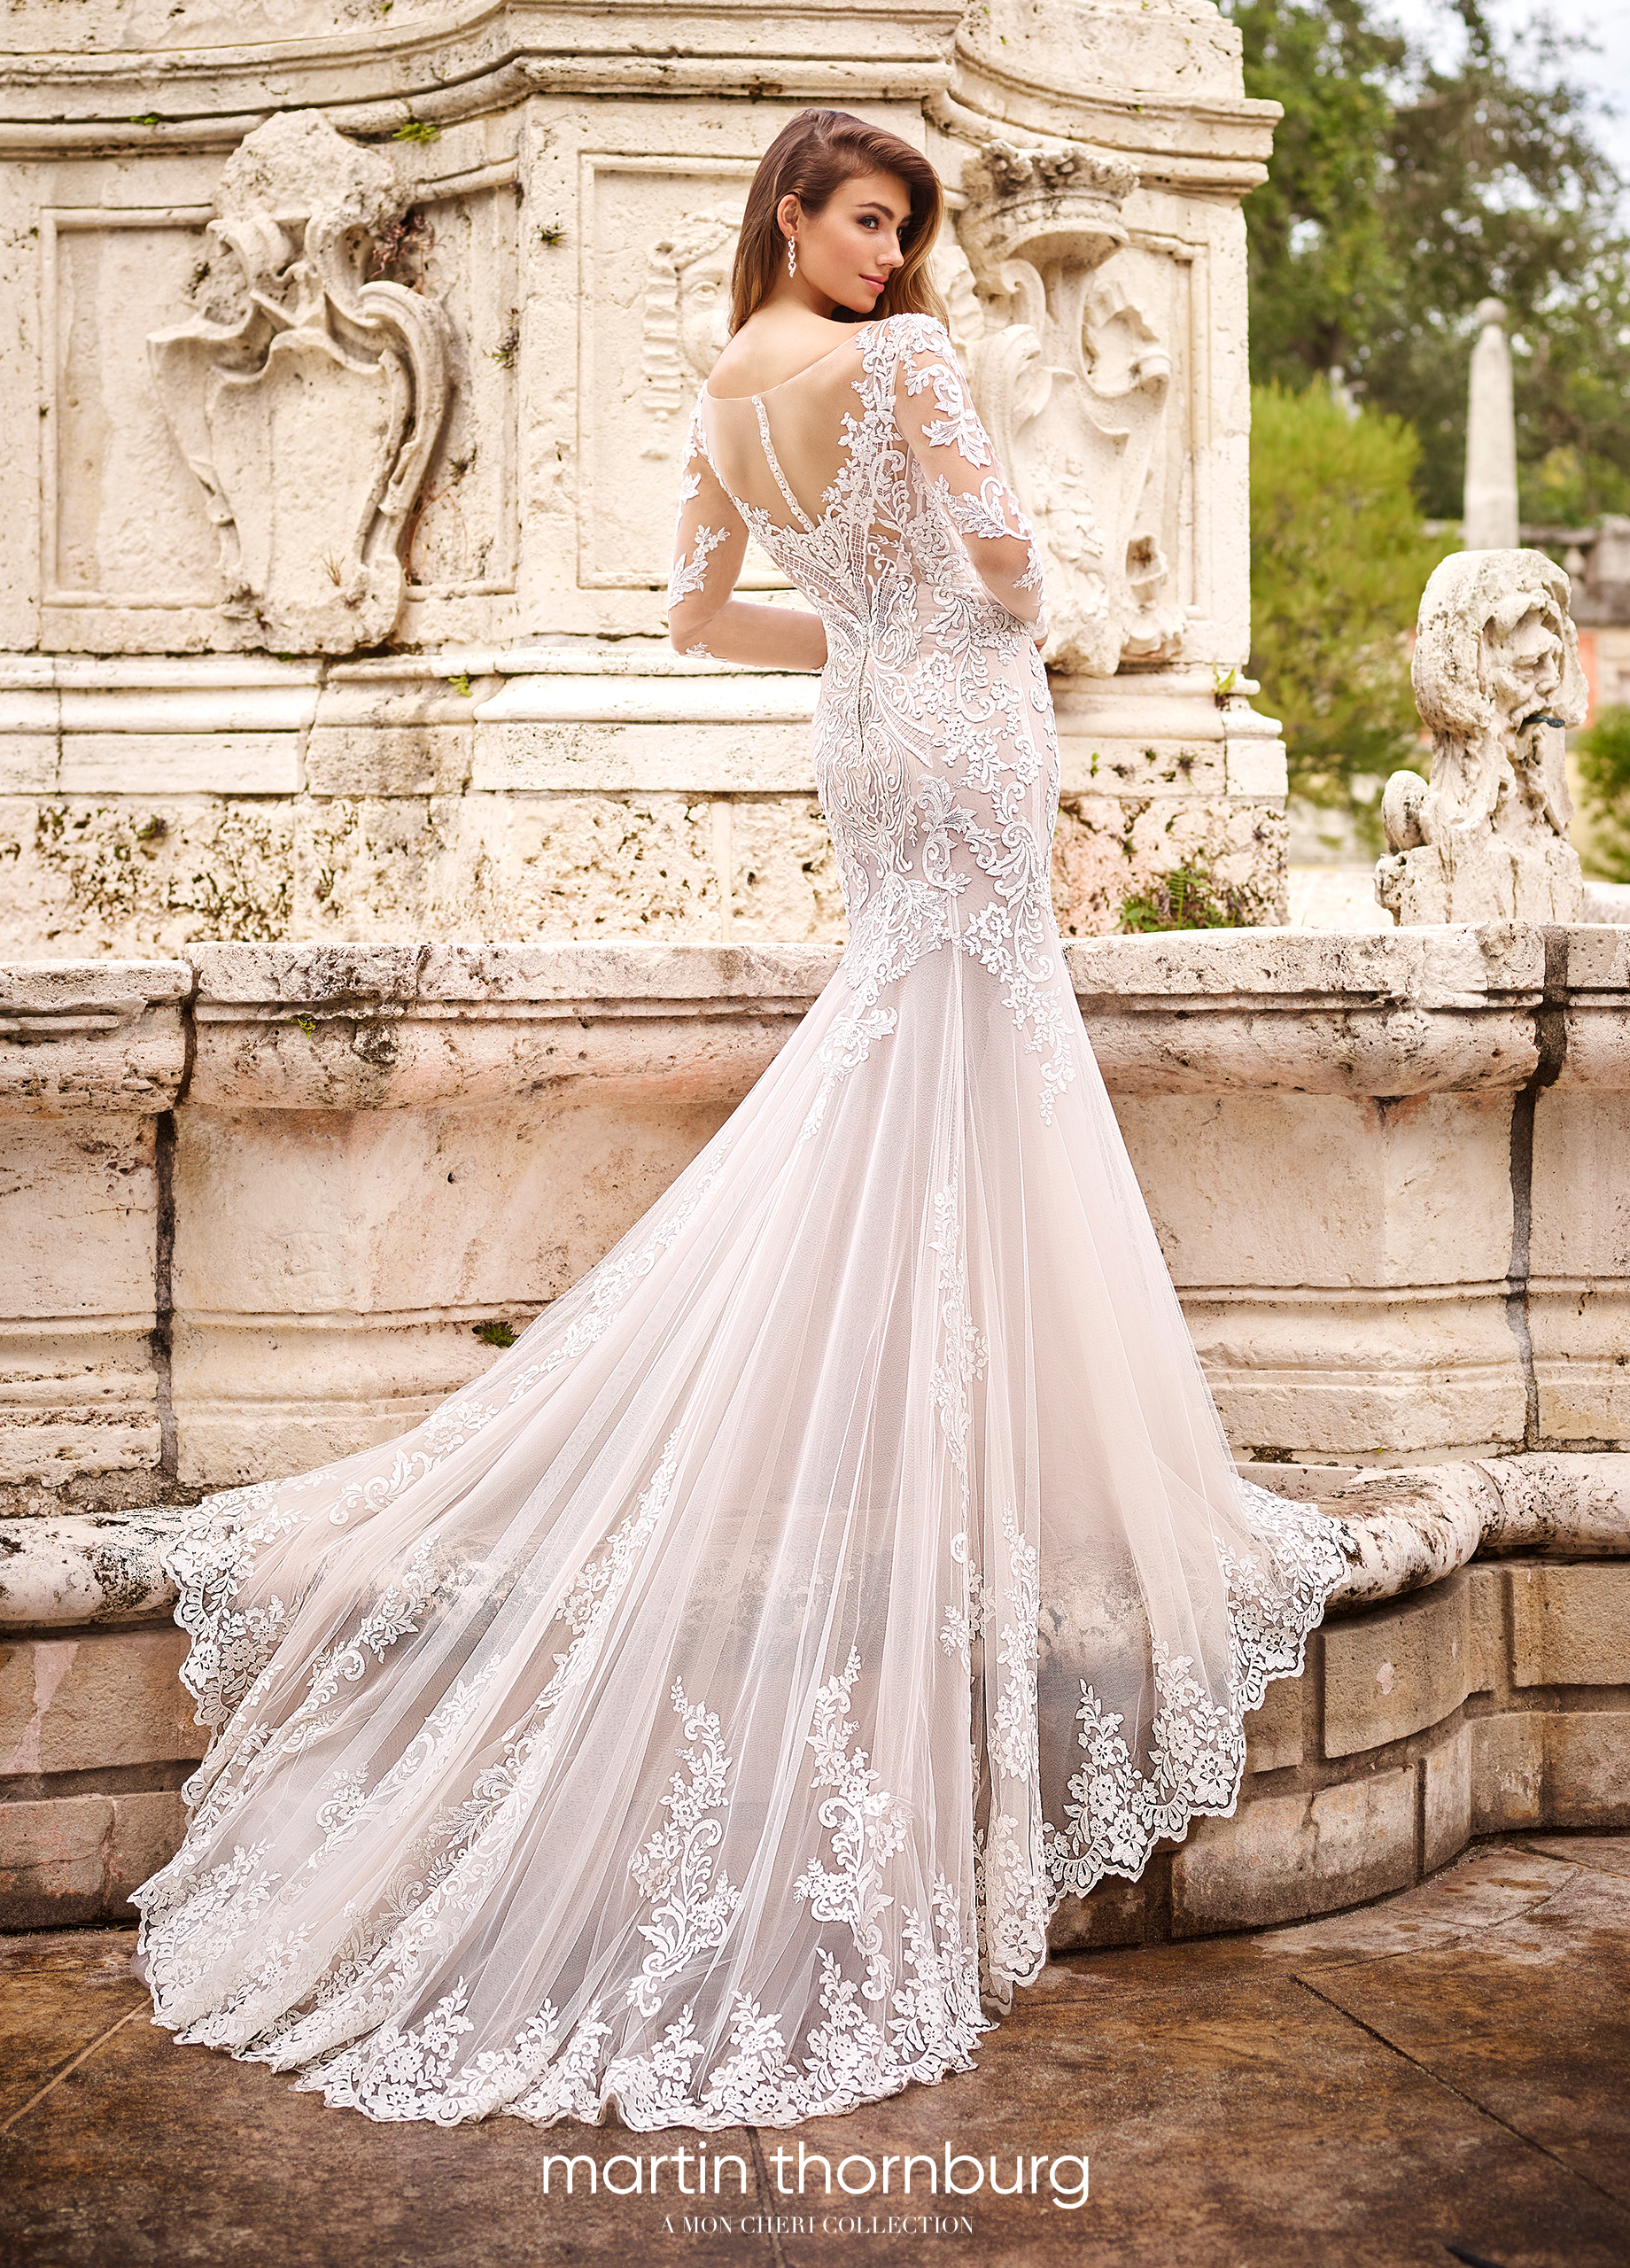 Martin Thornburg - A Mon Cheri Collection - BRIDALCHIQUE